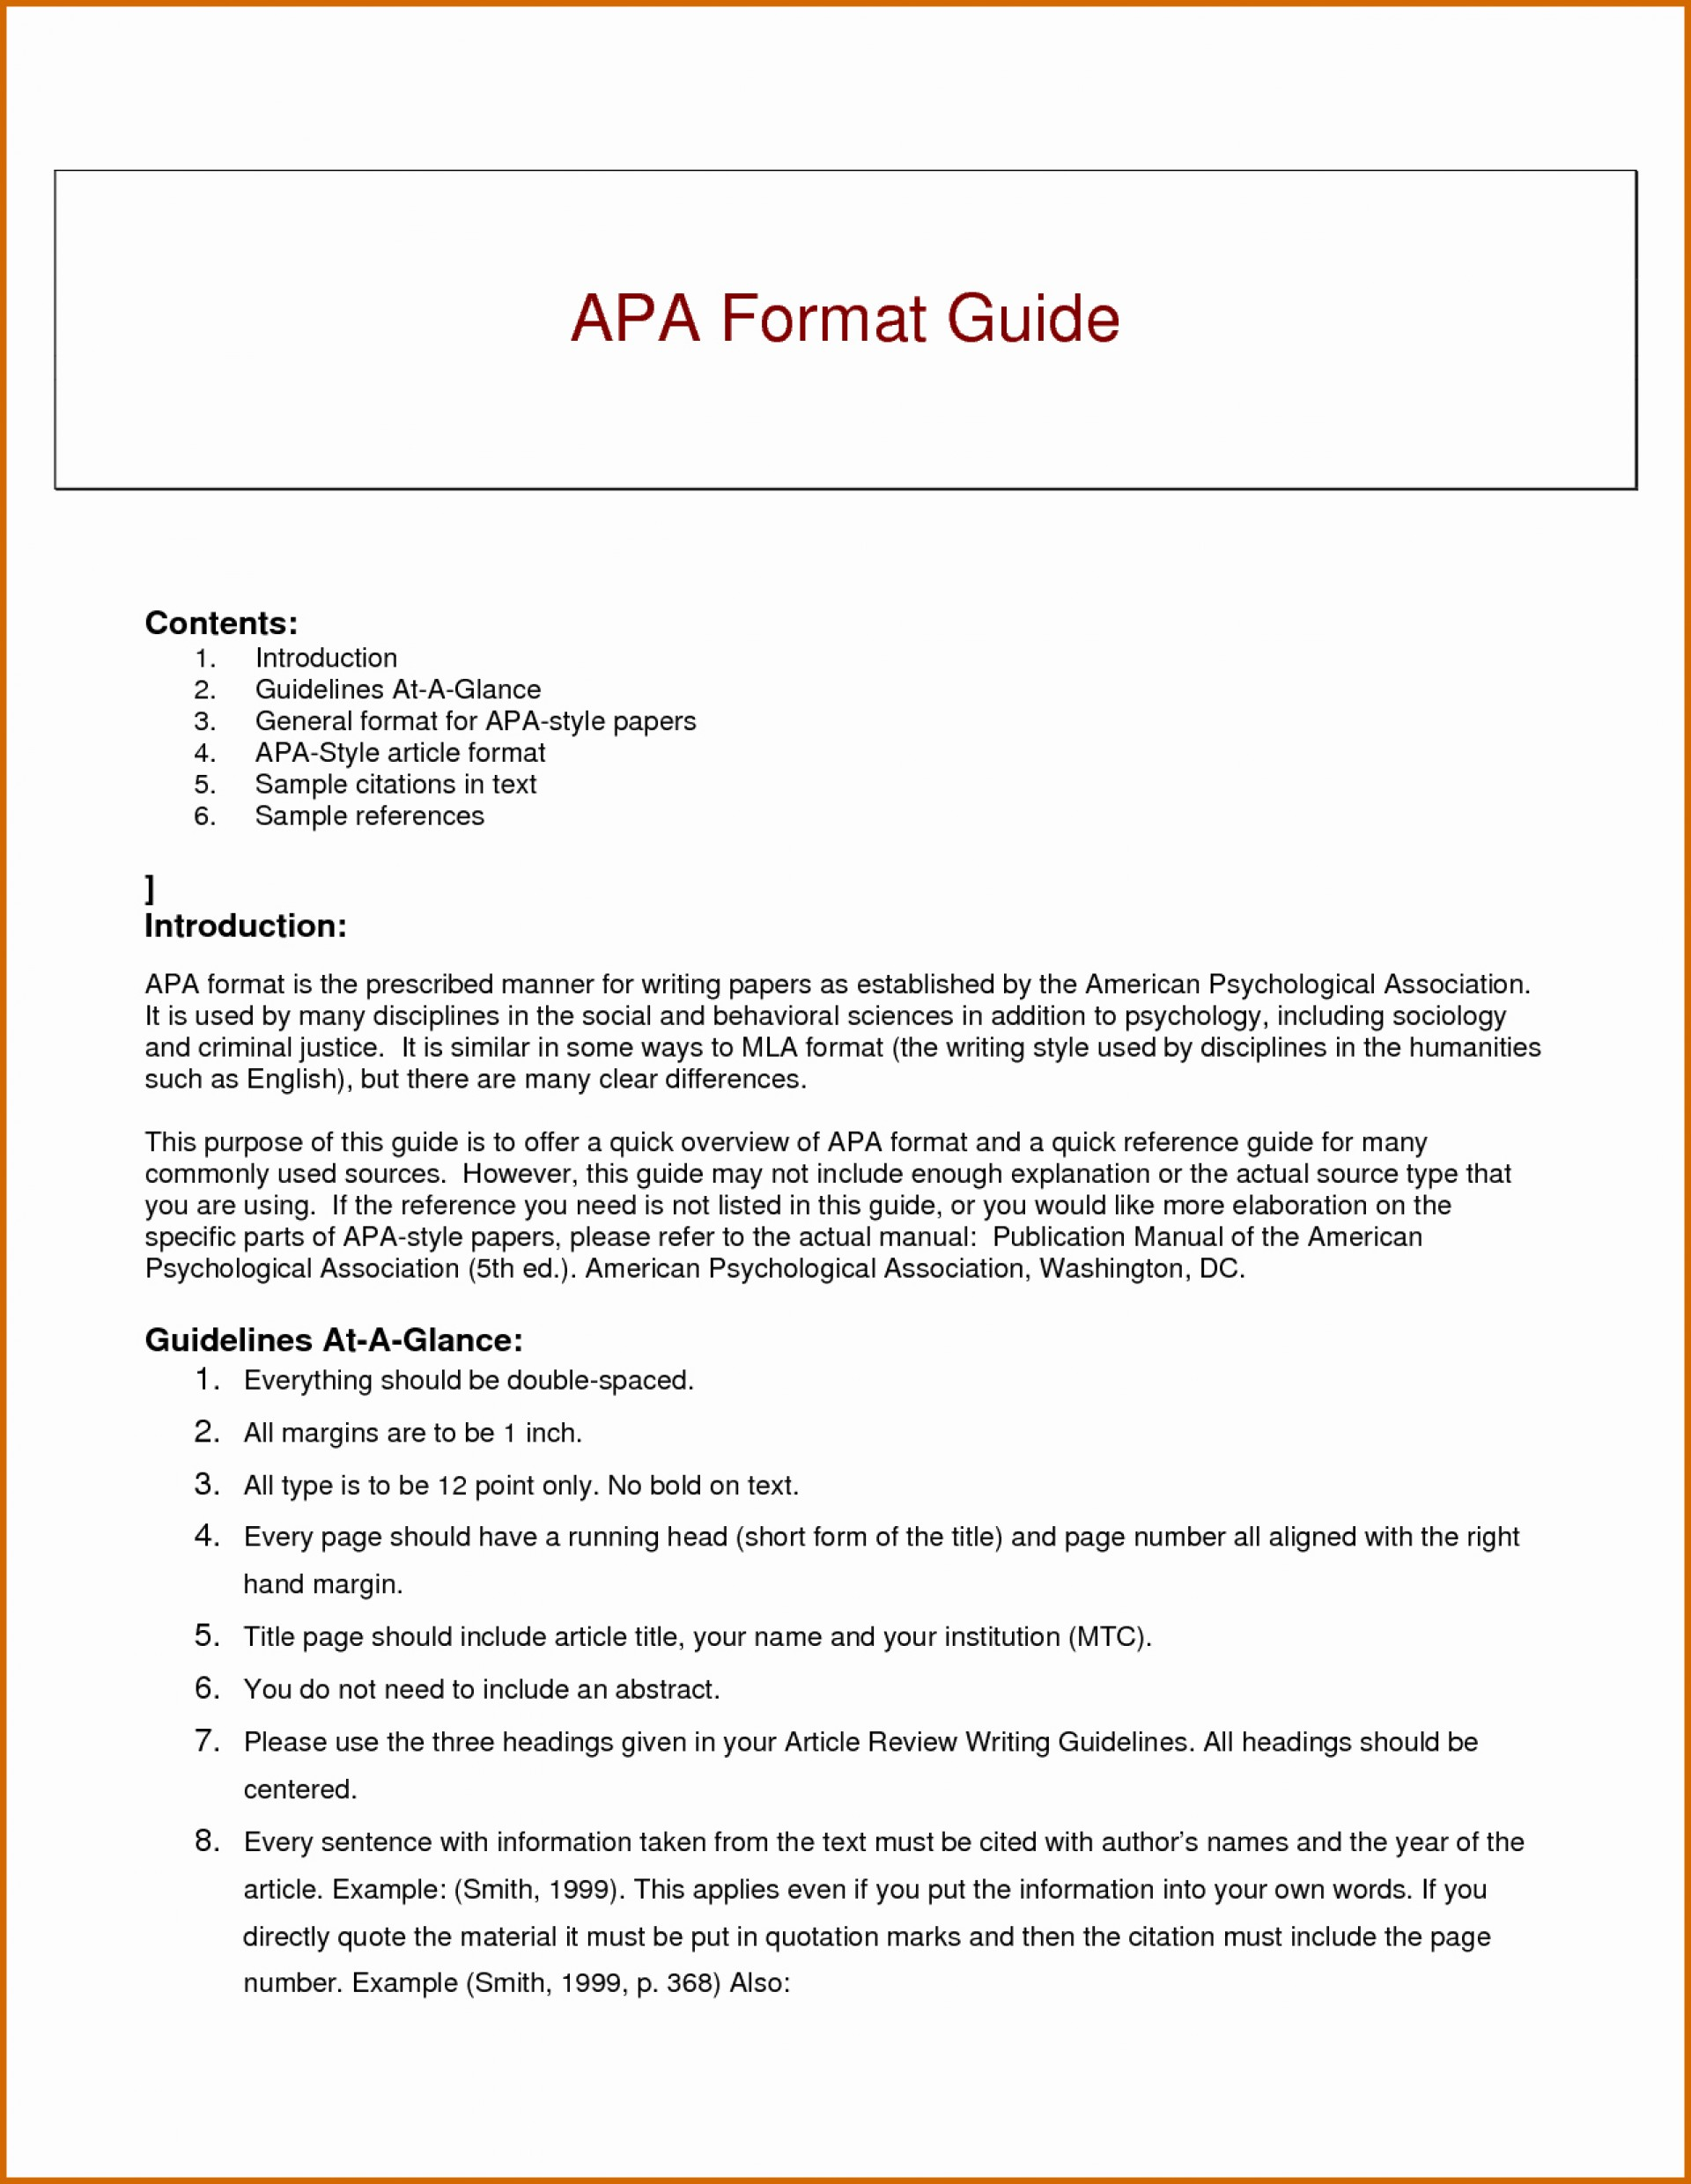 015 Apa Research Paper Format Template New Help Writing Buy Good Essay Who Can Do Of Example Outstanding In How To Write A College 6th Edition Examples Outline Style 1920